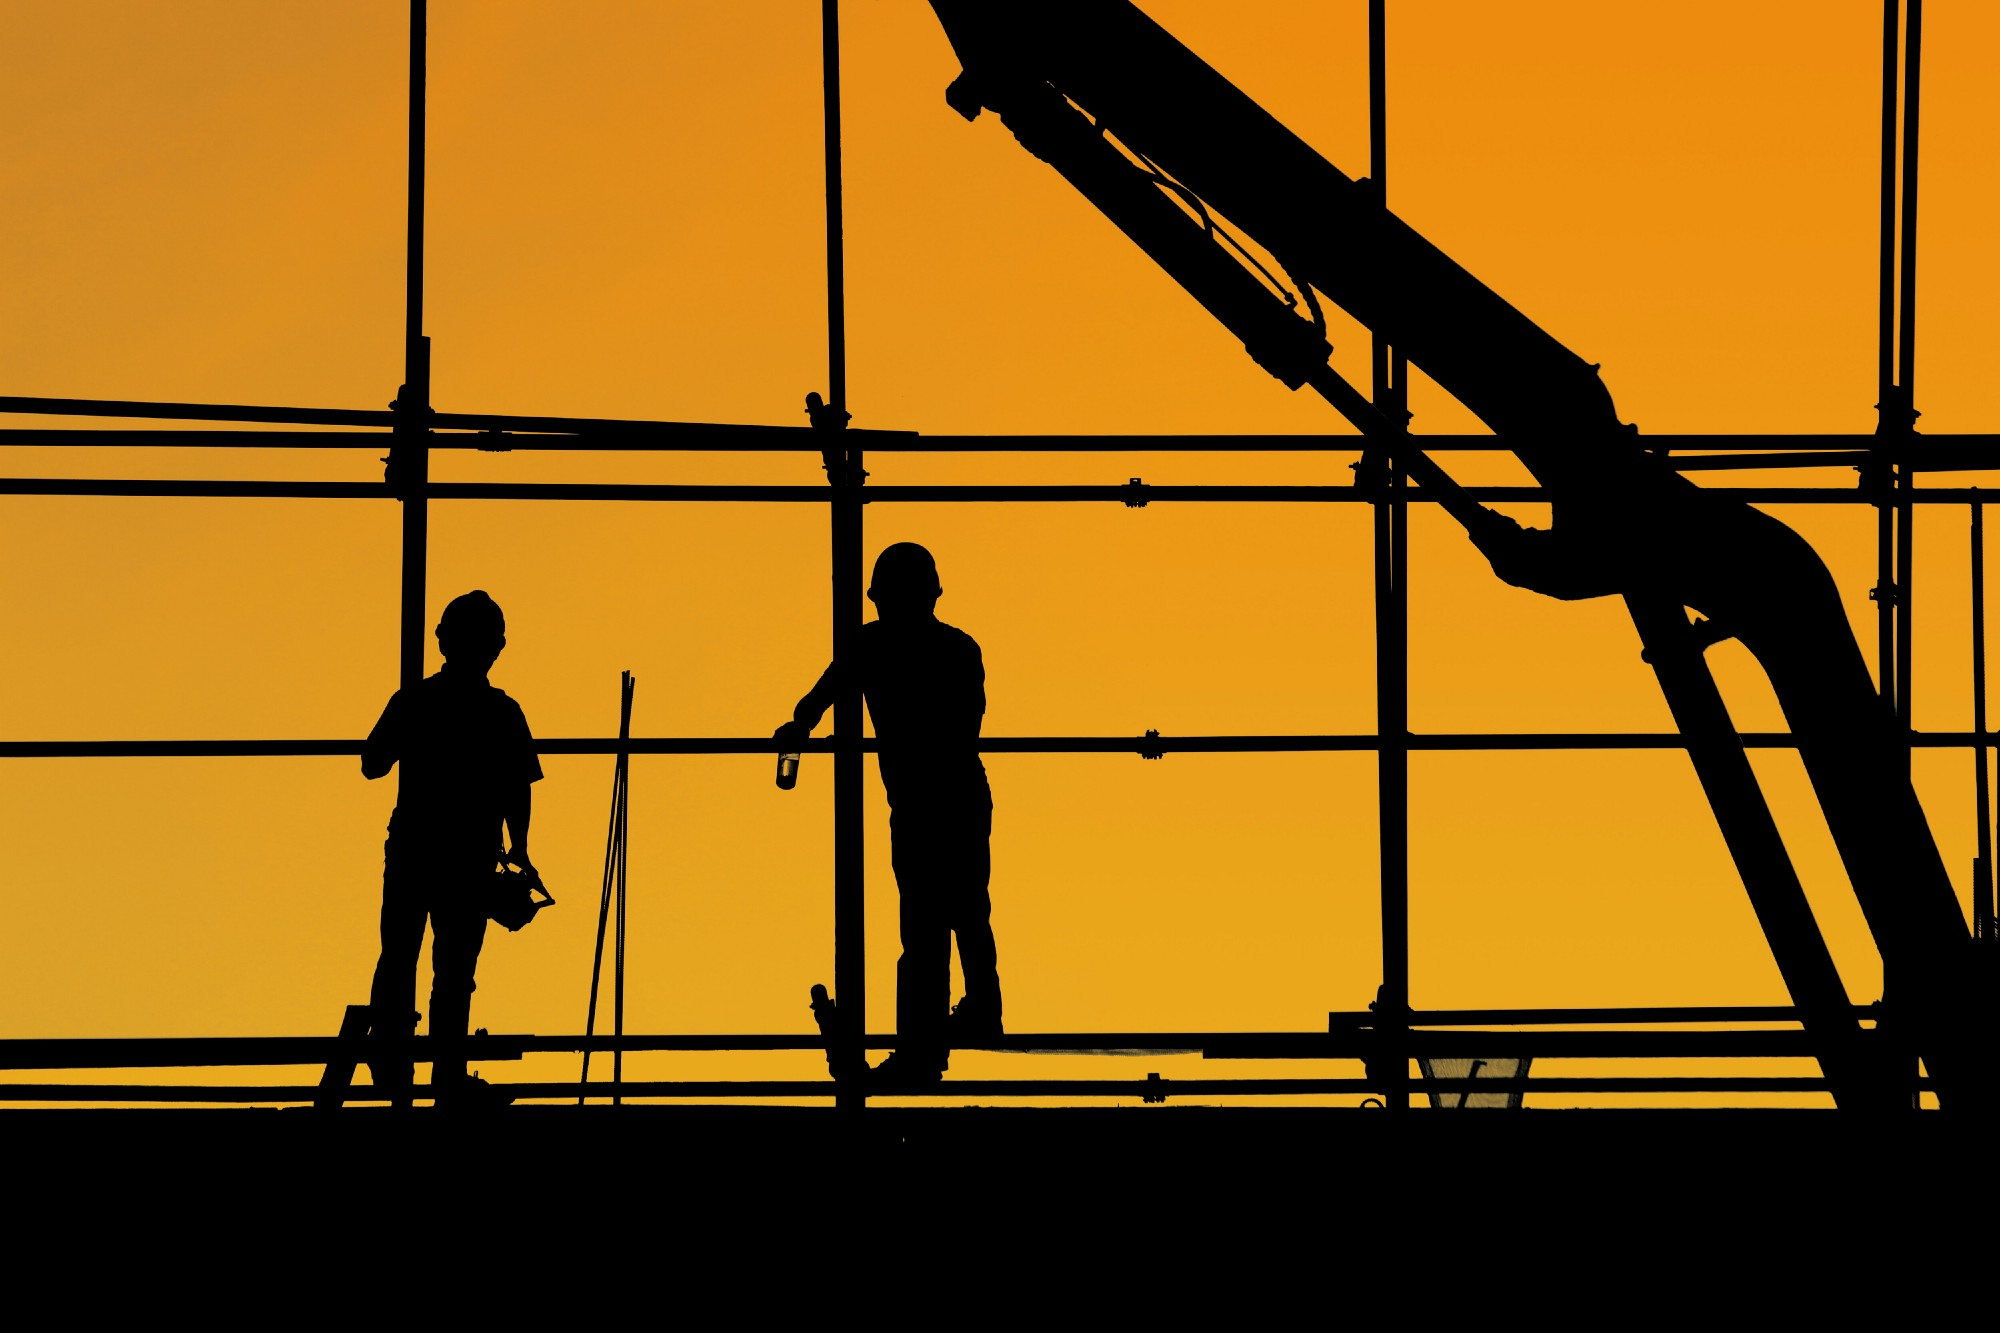 Silhouette of two construction workers on a scaffold